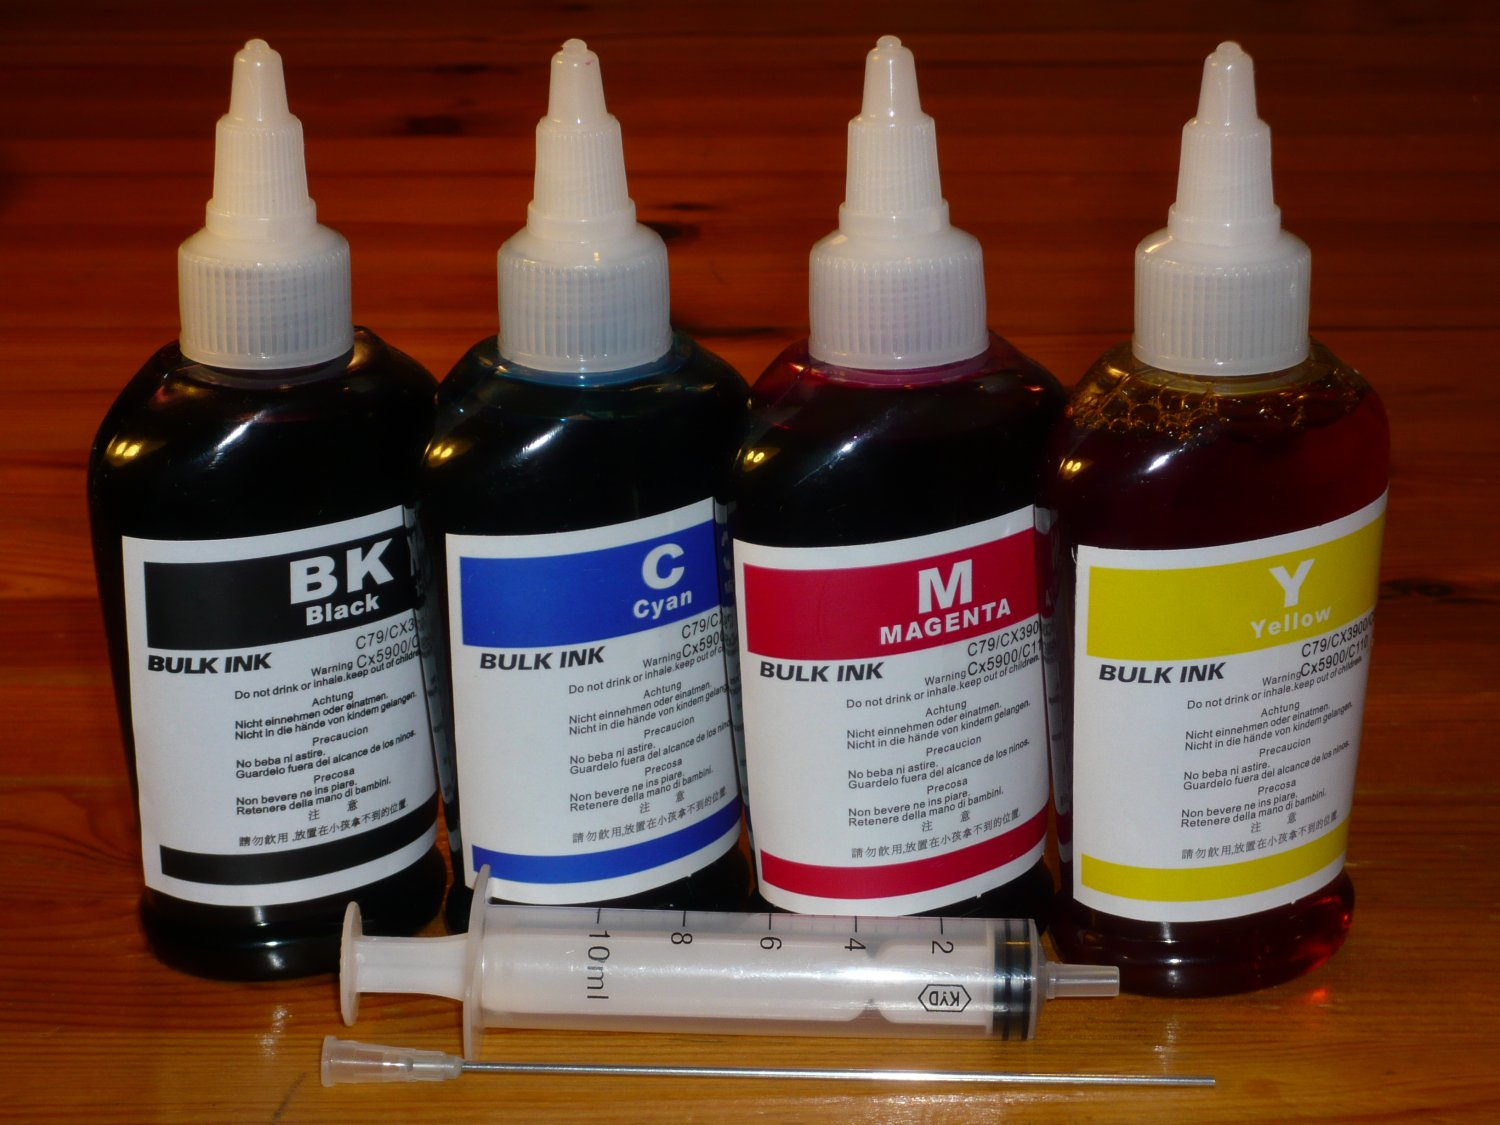 Bulk universal refill ink for EPSON, HP, BROTHER, CANON ink printer 100ml x 4 bottles, total 400ml